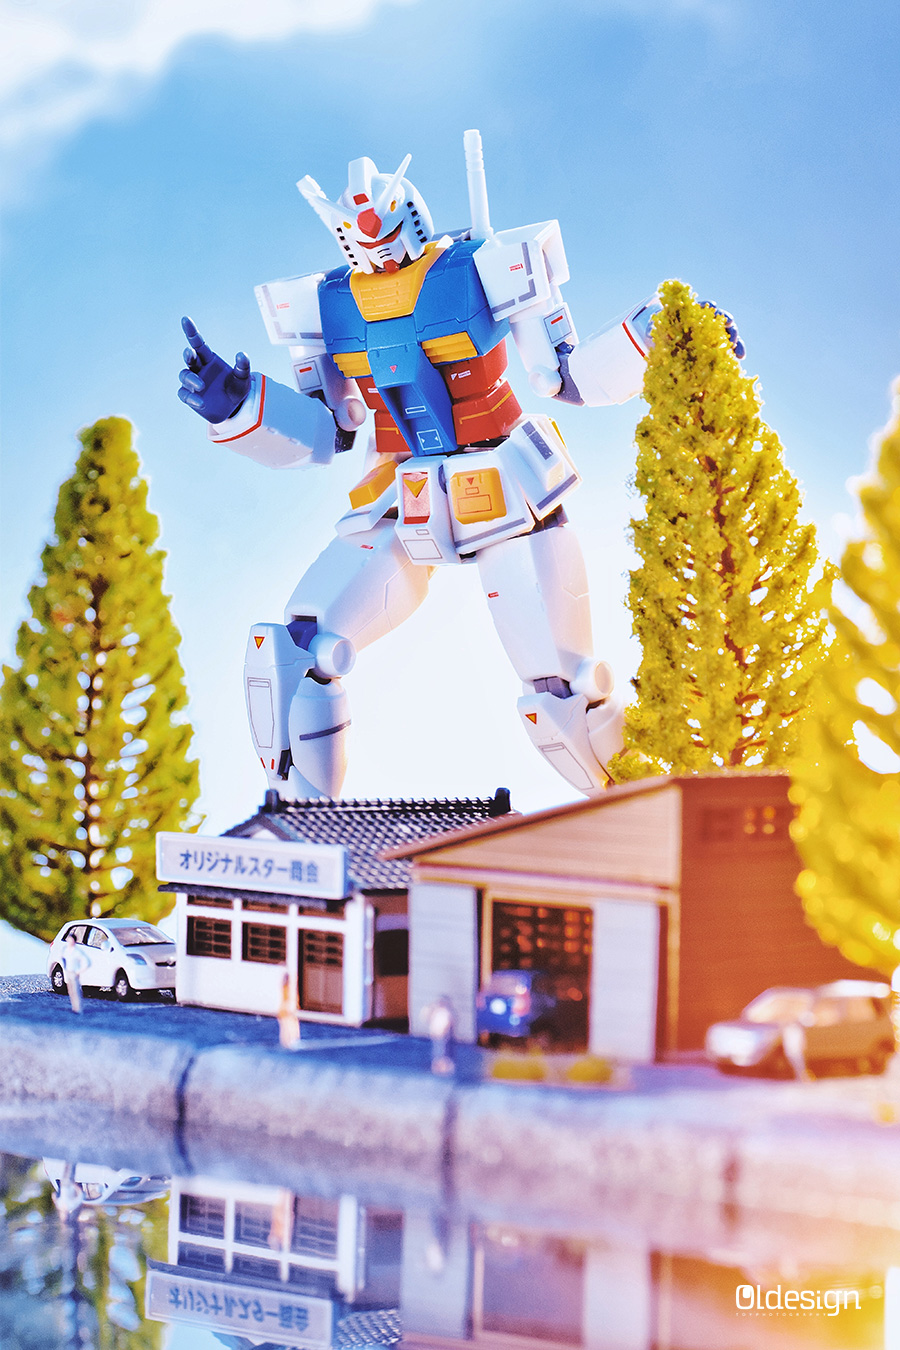 3_gundam_oldesign